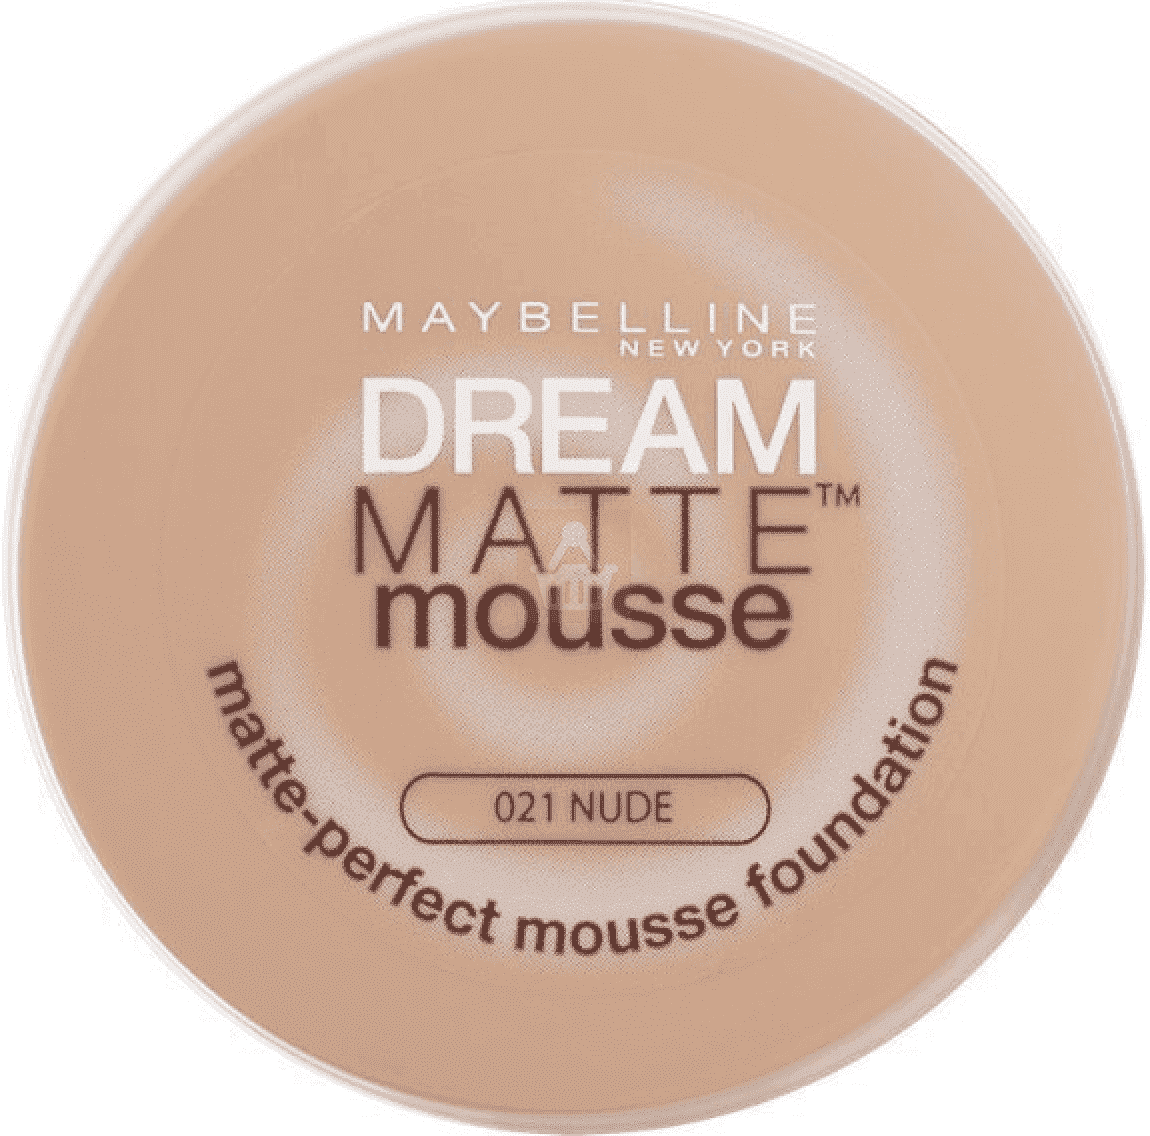 Maybelline Foundation Dream Matte Mousse - Nude 21